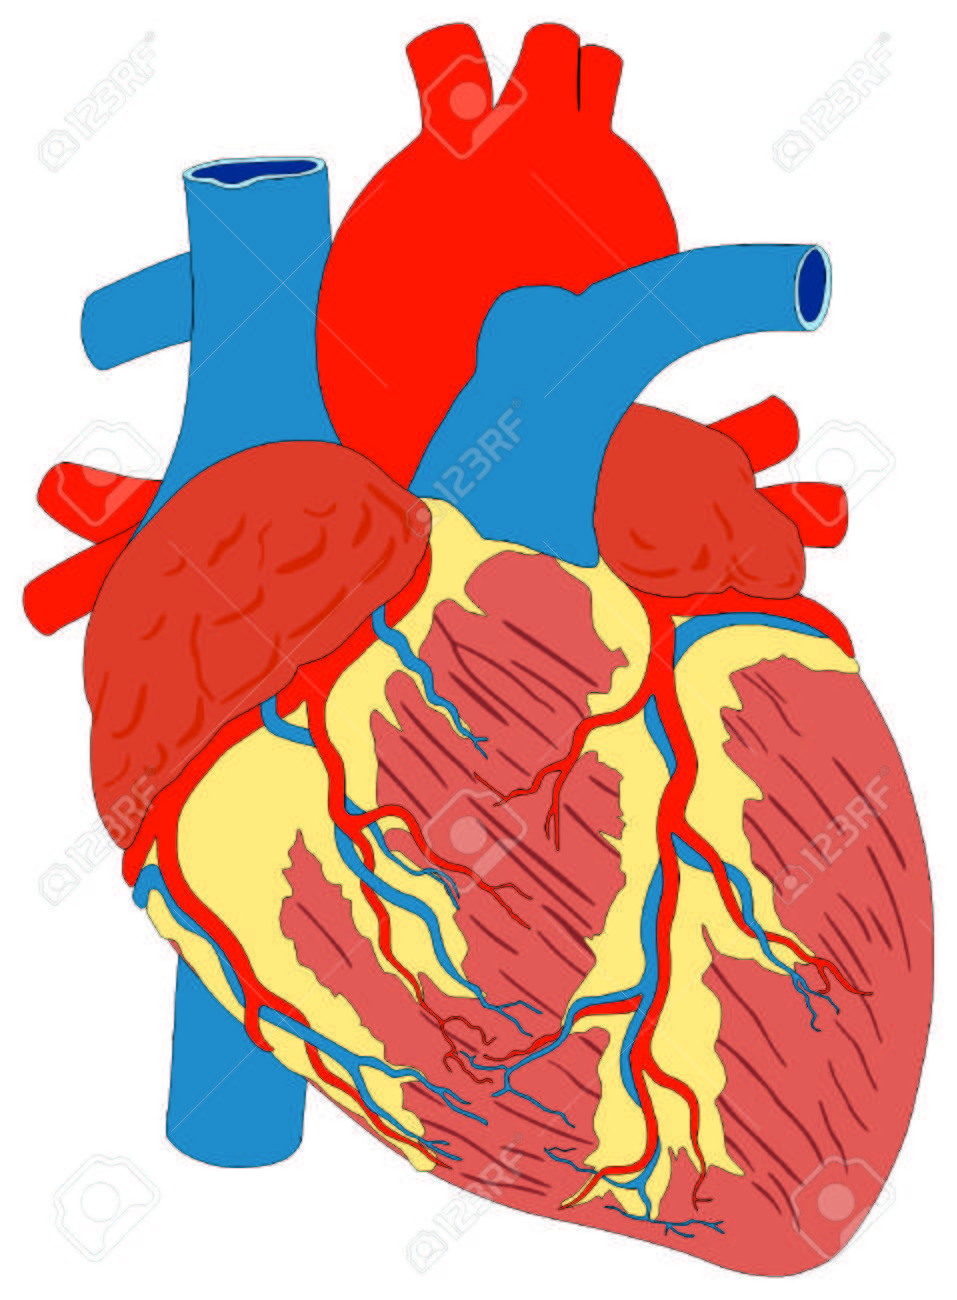 957x1300 Unlabeled Heart Diagram